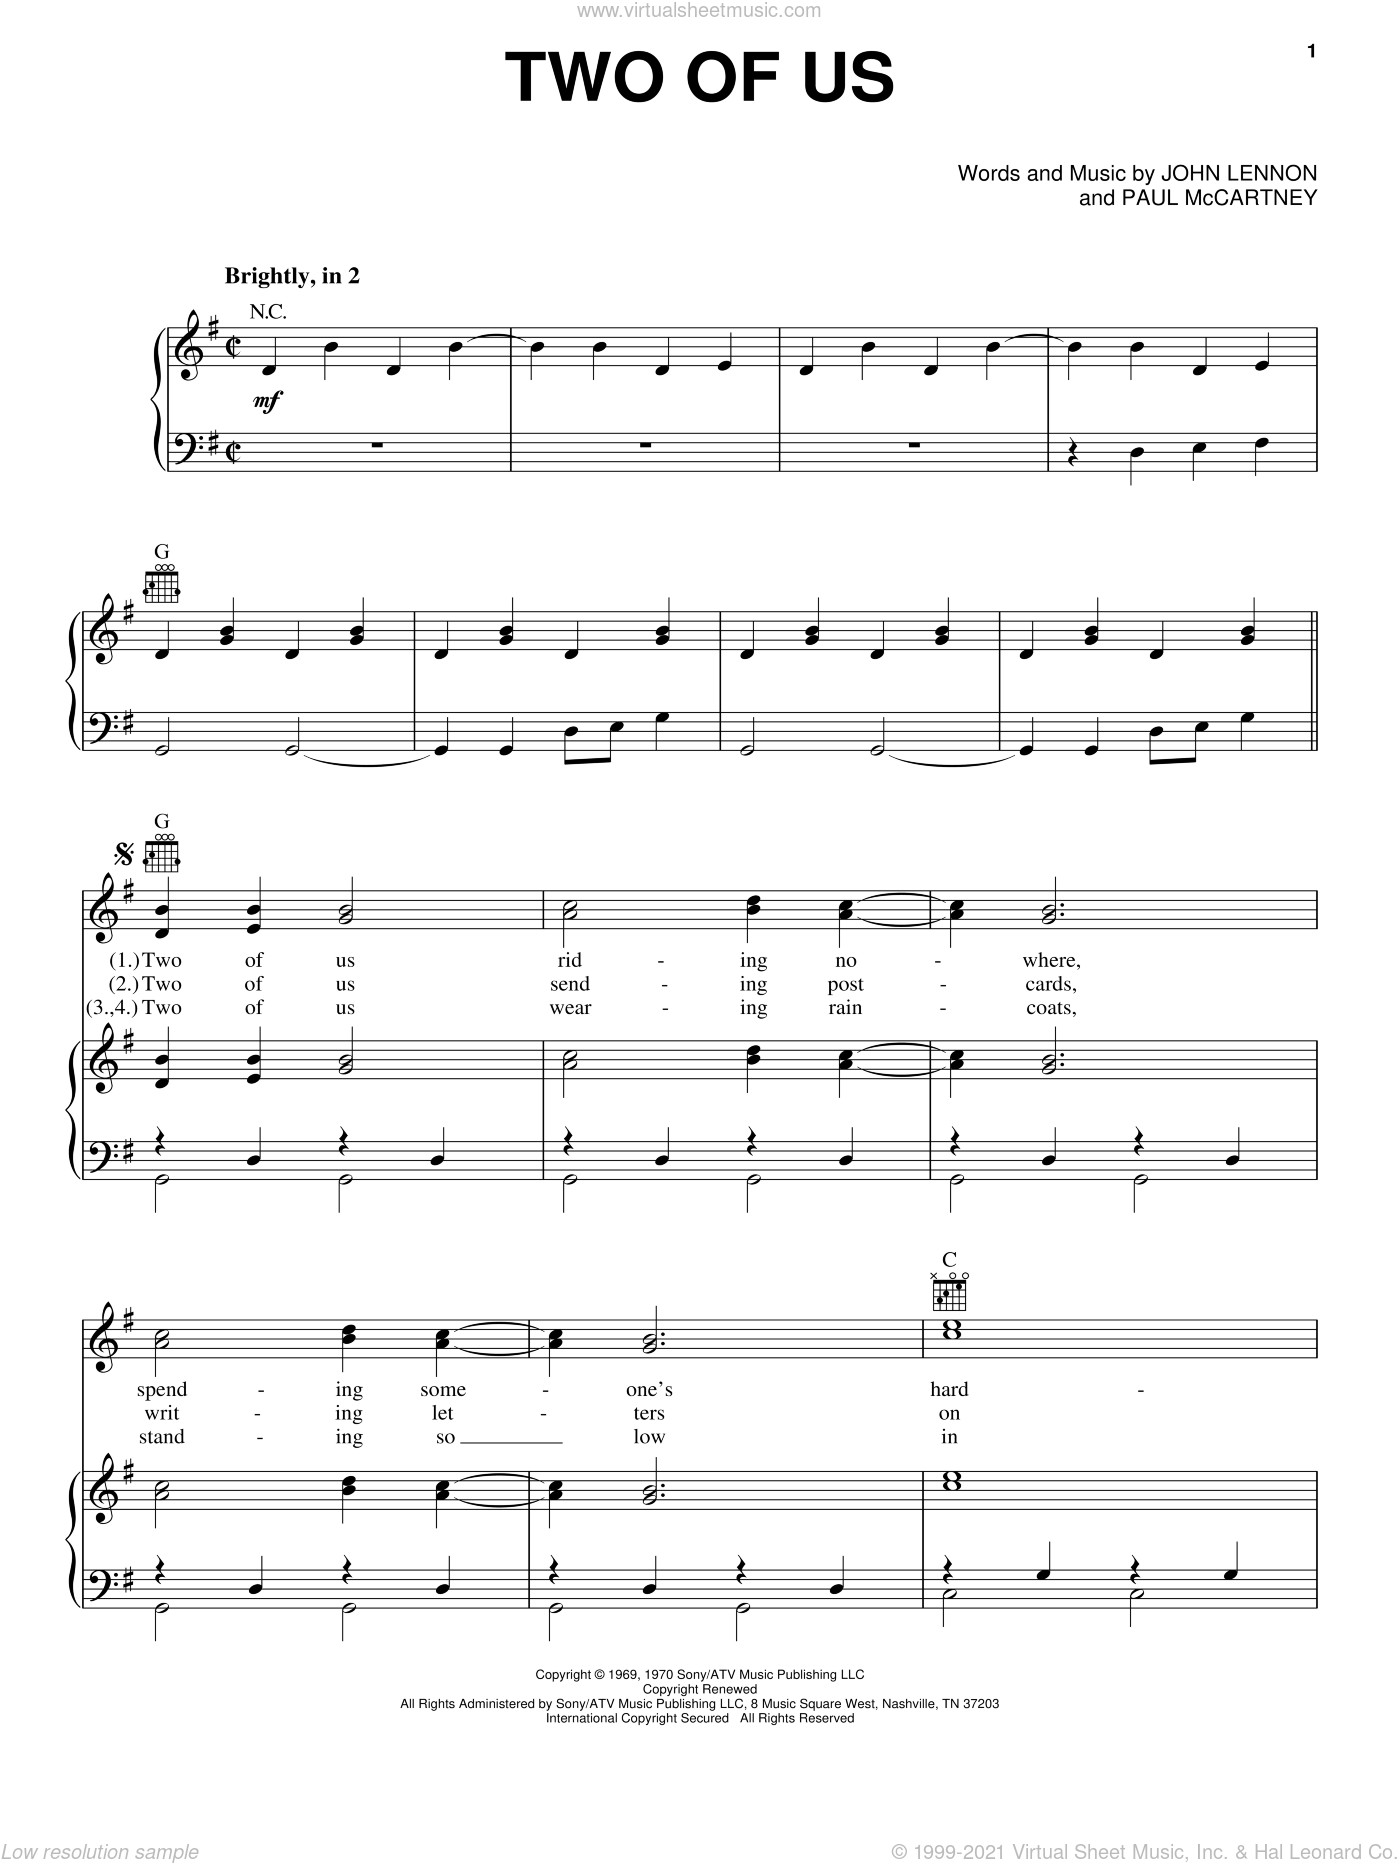 Two Of Us Sheet Music For Voice, Piano Or Guitar